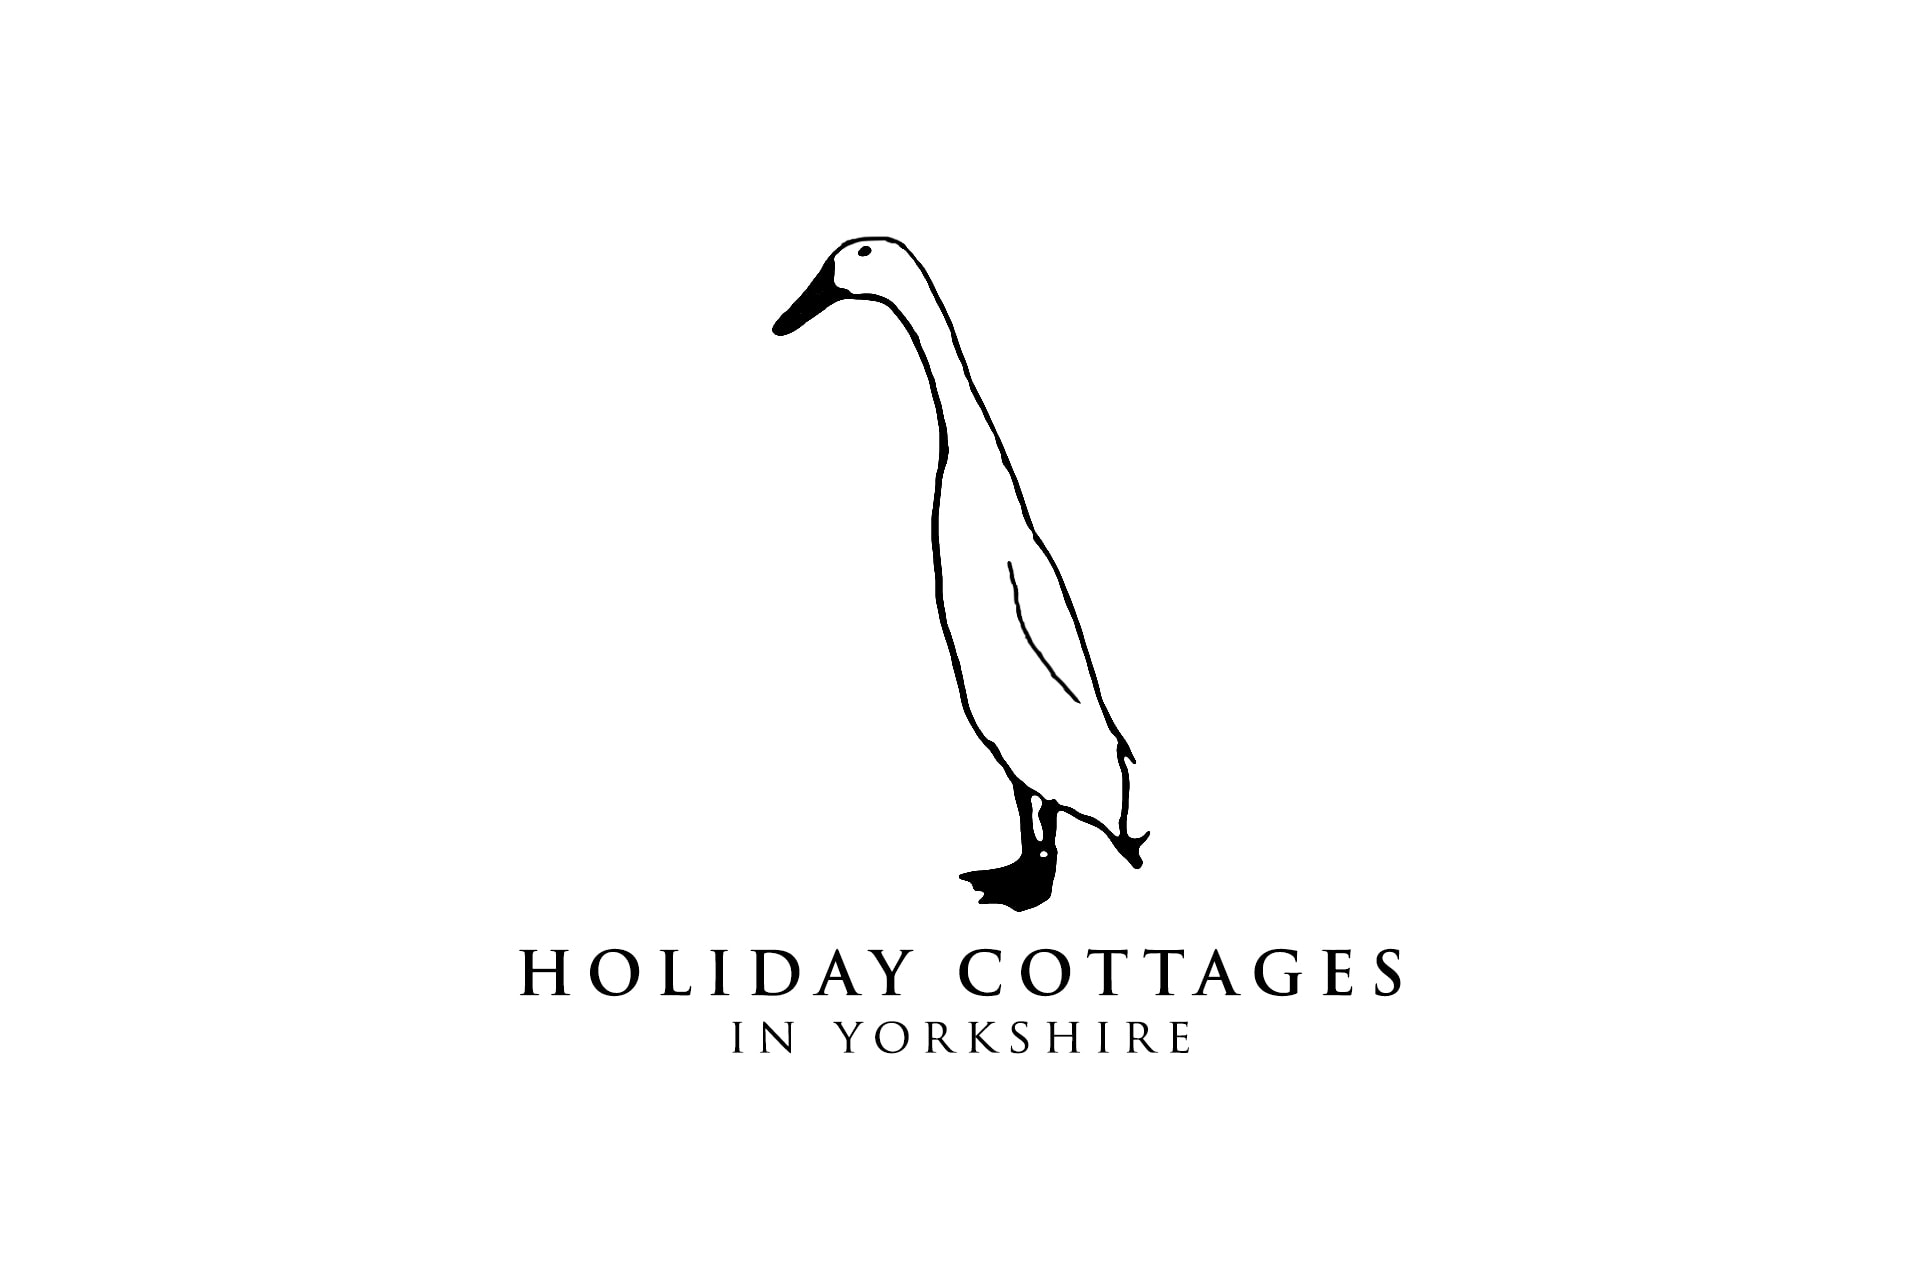 logo, duck, alastairrossphotography.co.uk, book direct, food festival, holiday, landscape photography, malton, malton food festival, north yorkshire, peak district, photography, rental, ryedale, self catering, staycation, visit malton, visit yorkshire, welcome to yorkshire, holidaycottagesinyorkshire.com